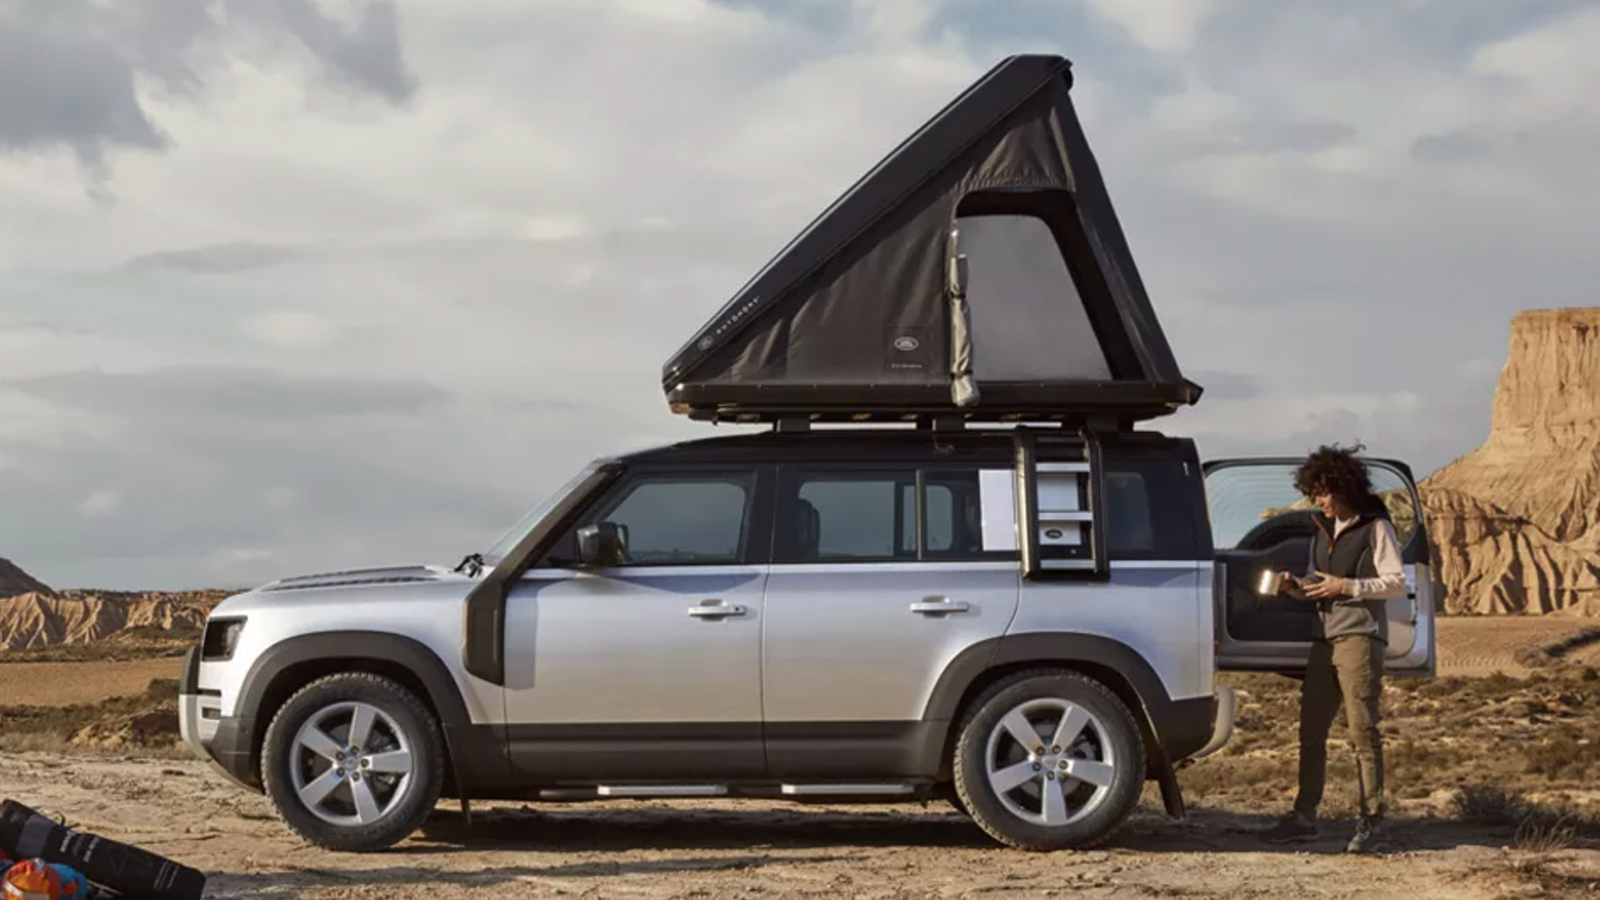 Autohome x Land Rover Hard Shell Roof Tent